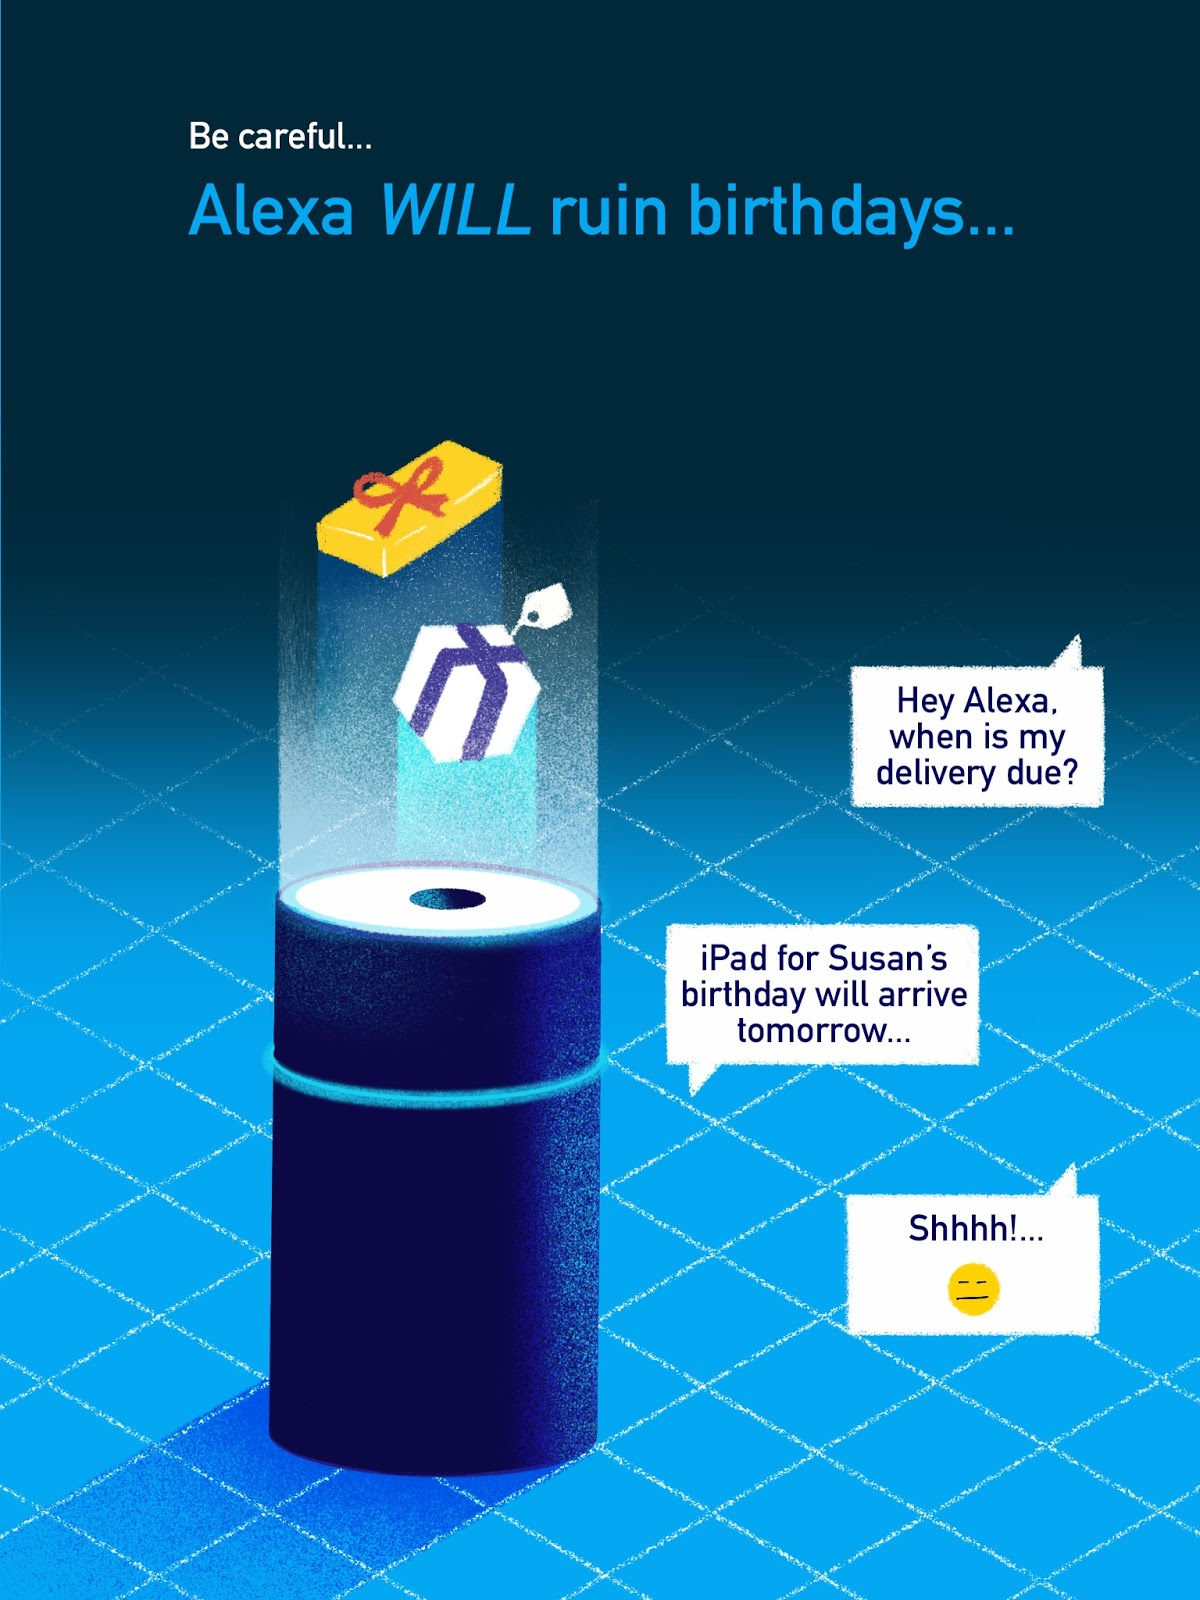 Alexa Can Ruin Birthday Surprises